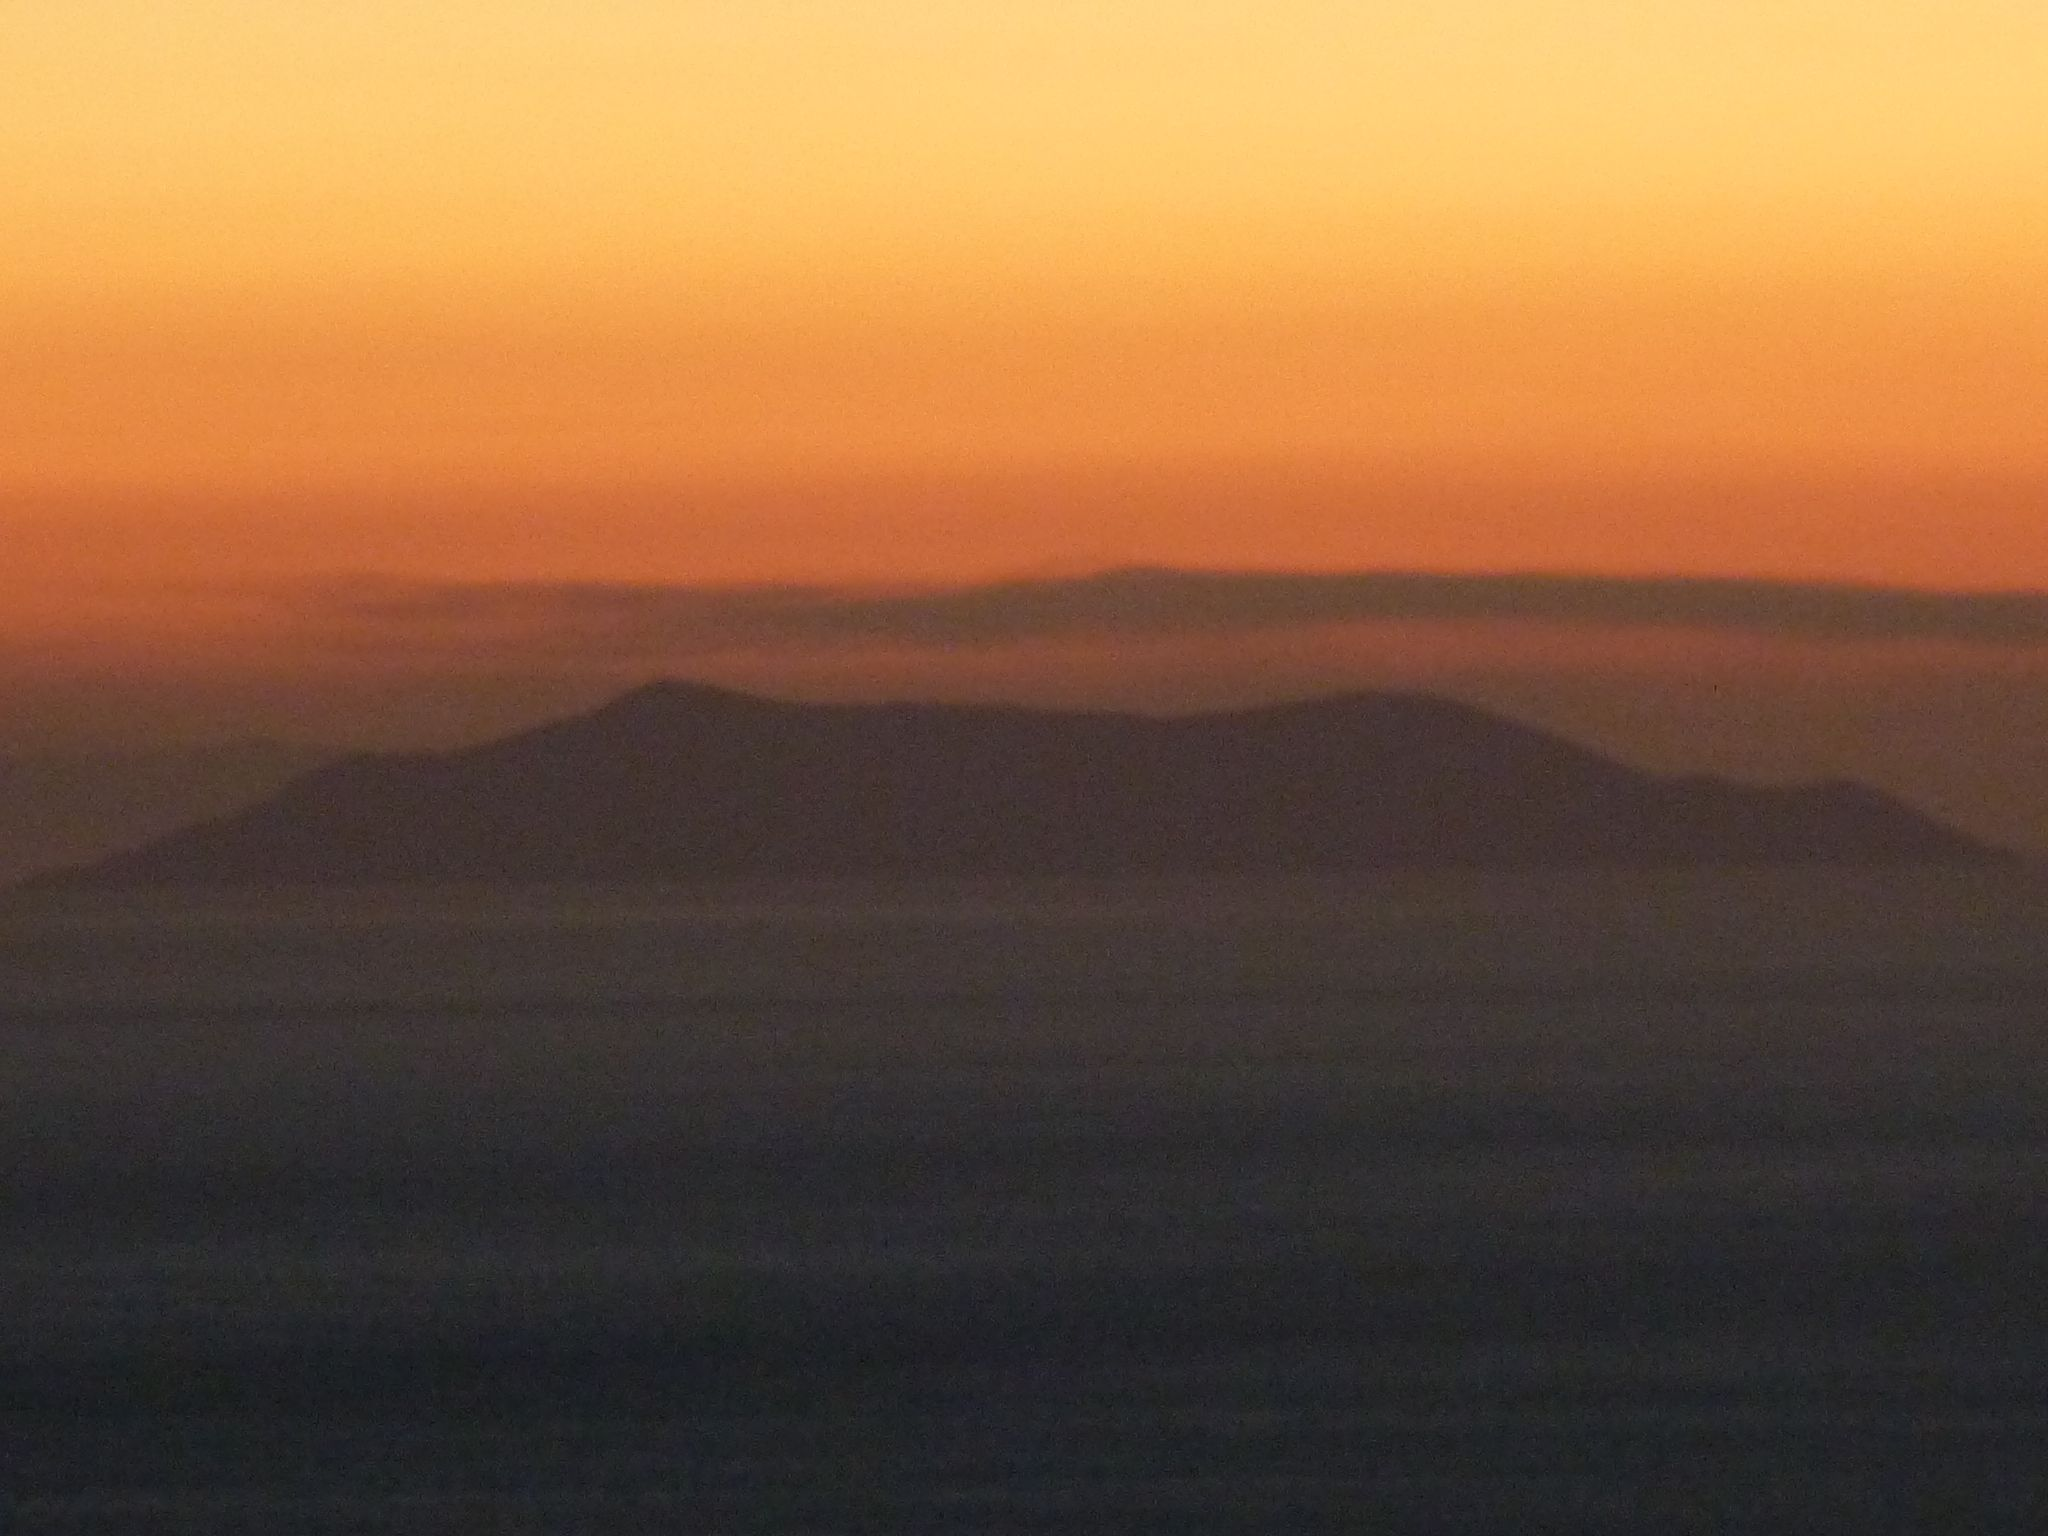 View from Tinos island over Agean sea and Gyaros island